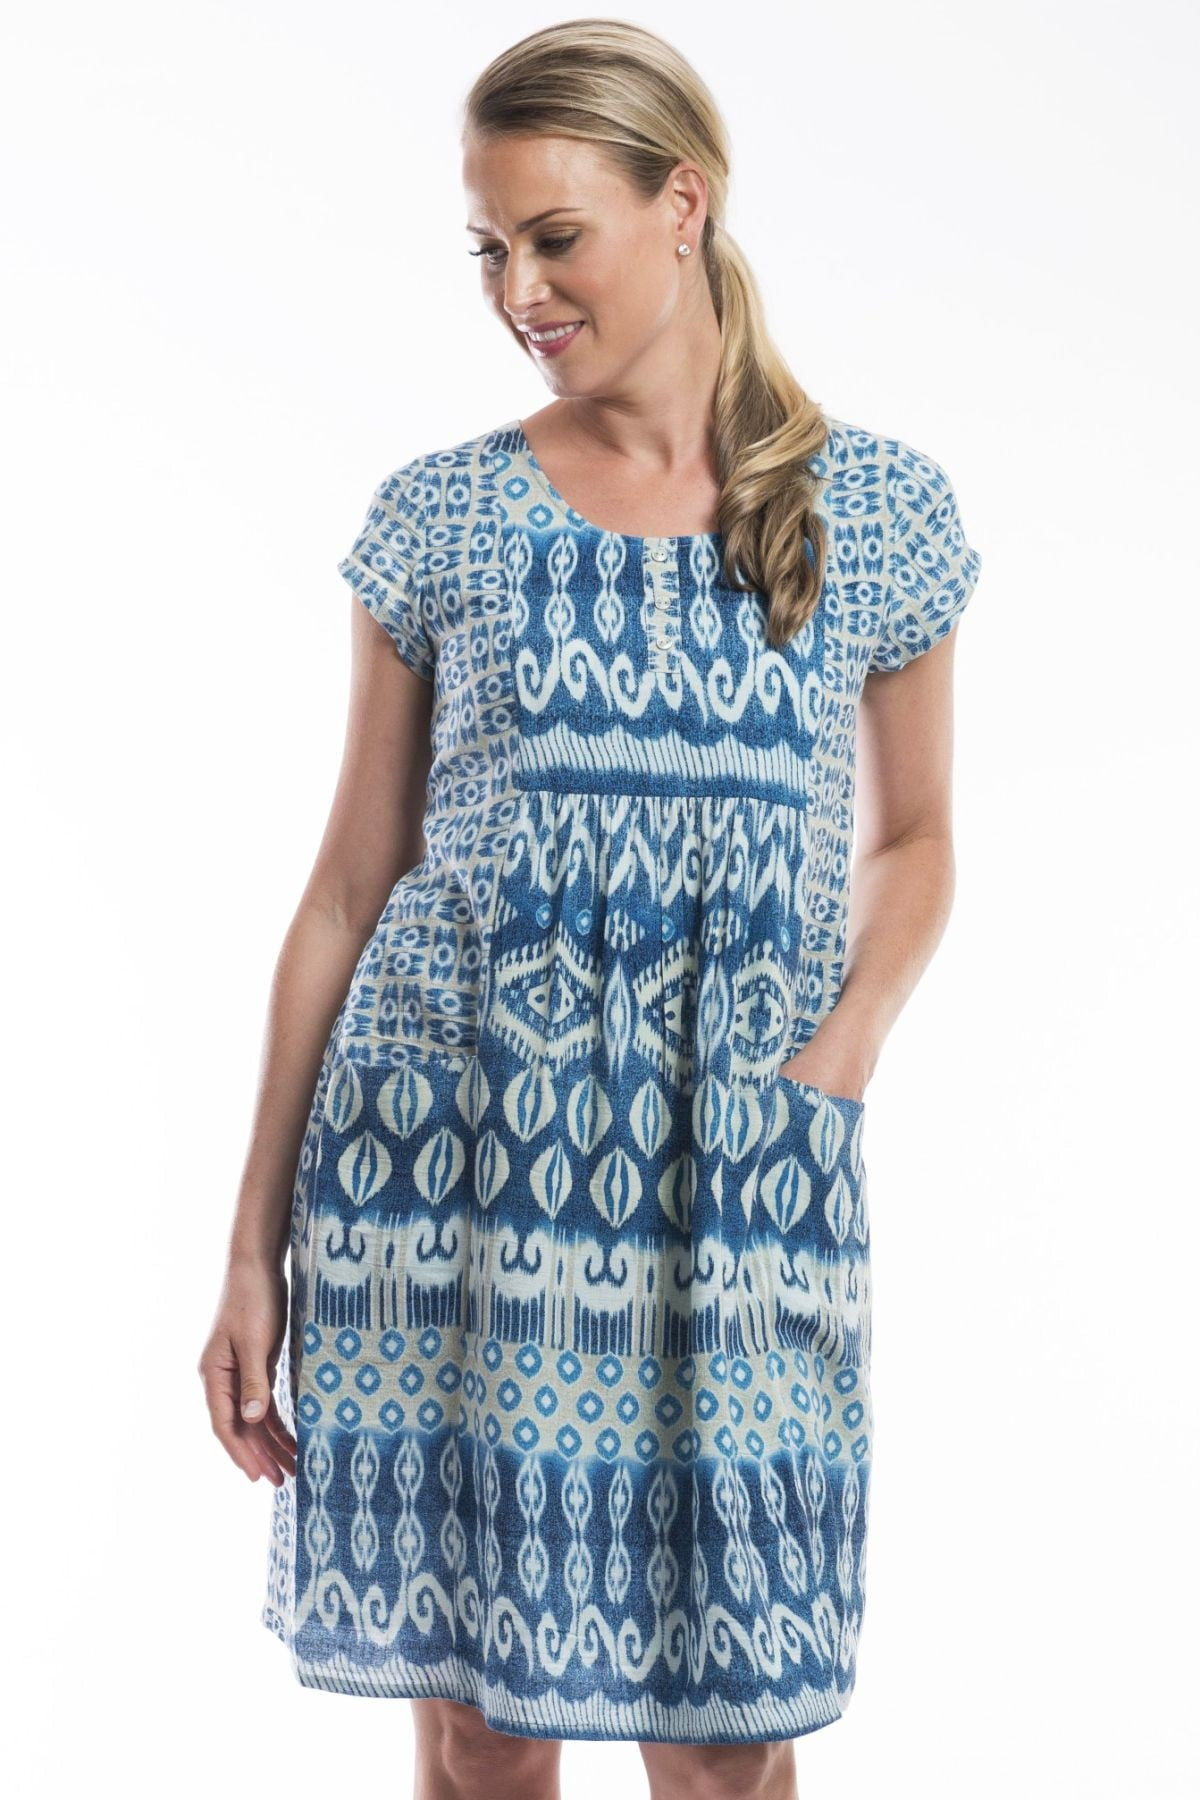 Orientique Turin Dress Tunic Dress | I Love Tunics | Tunic Tops | Tunic | Tunic Dresses  | womens clothing online